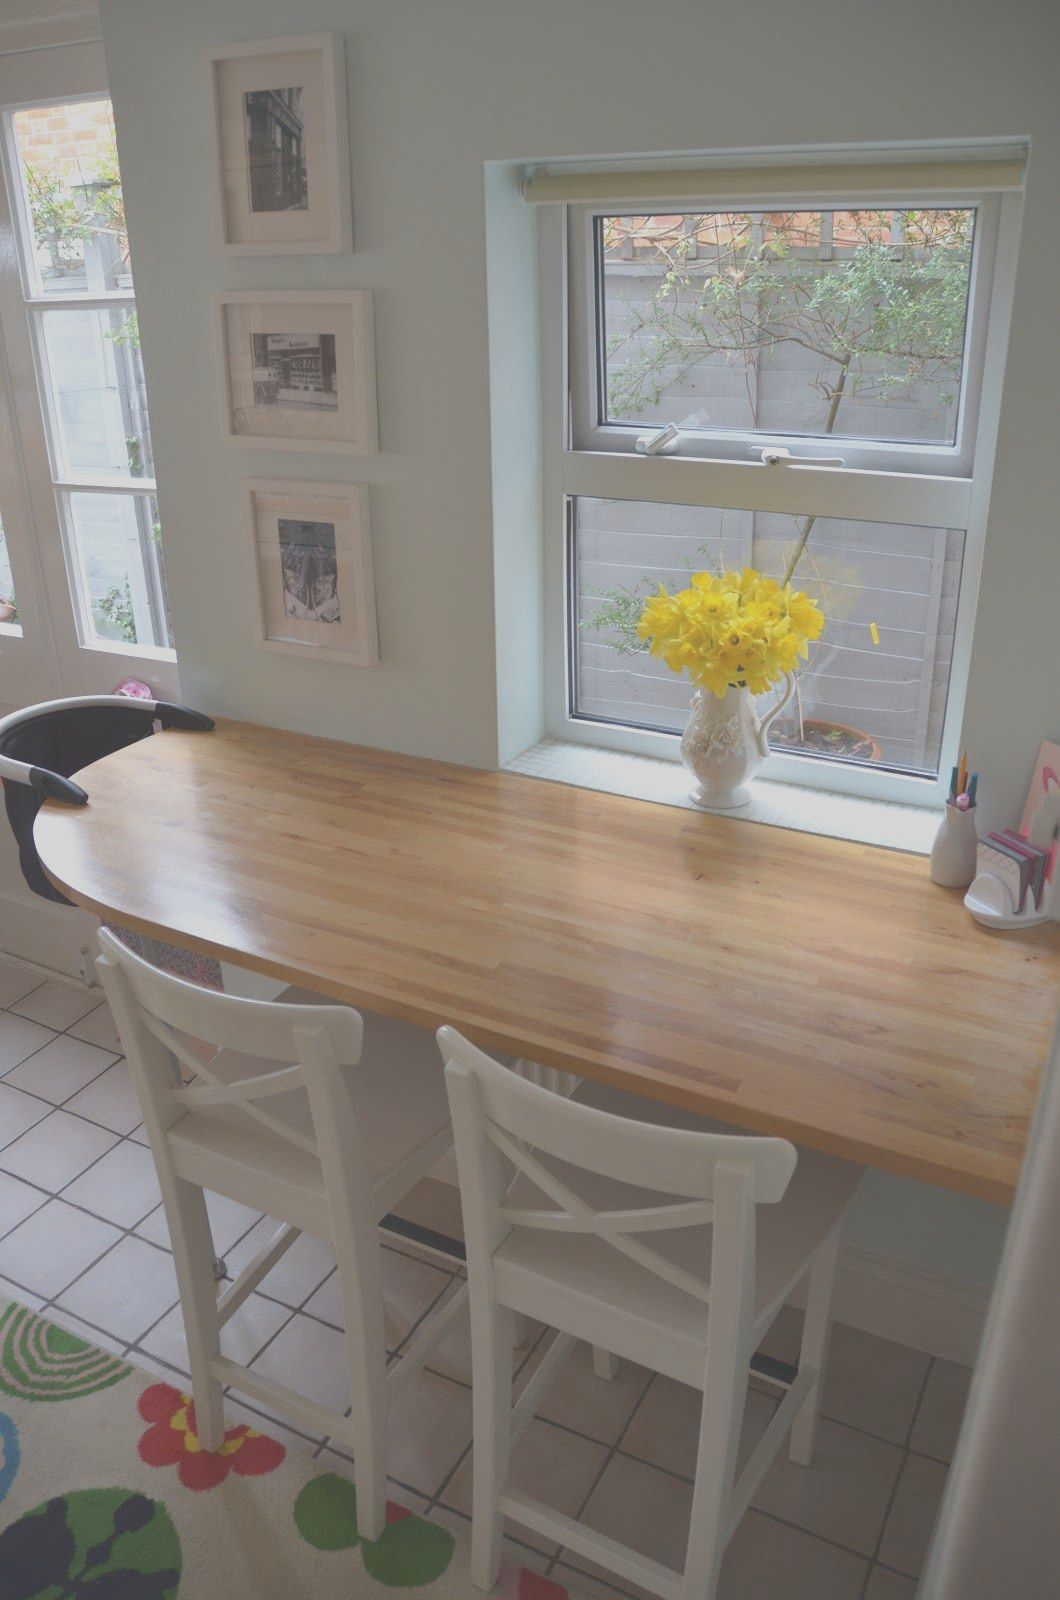 9 Acceptable Kitchen Table Ideas For Small Kitchens Photography Kitchen Table Small Space Kitchen Nook Table Space Saving Kitchen Table